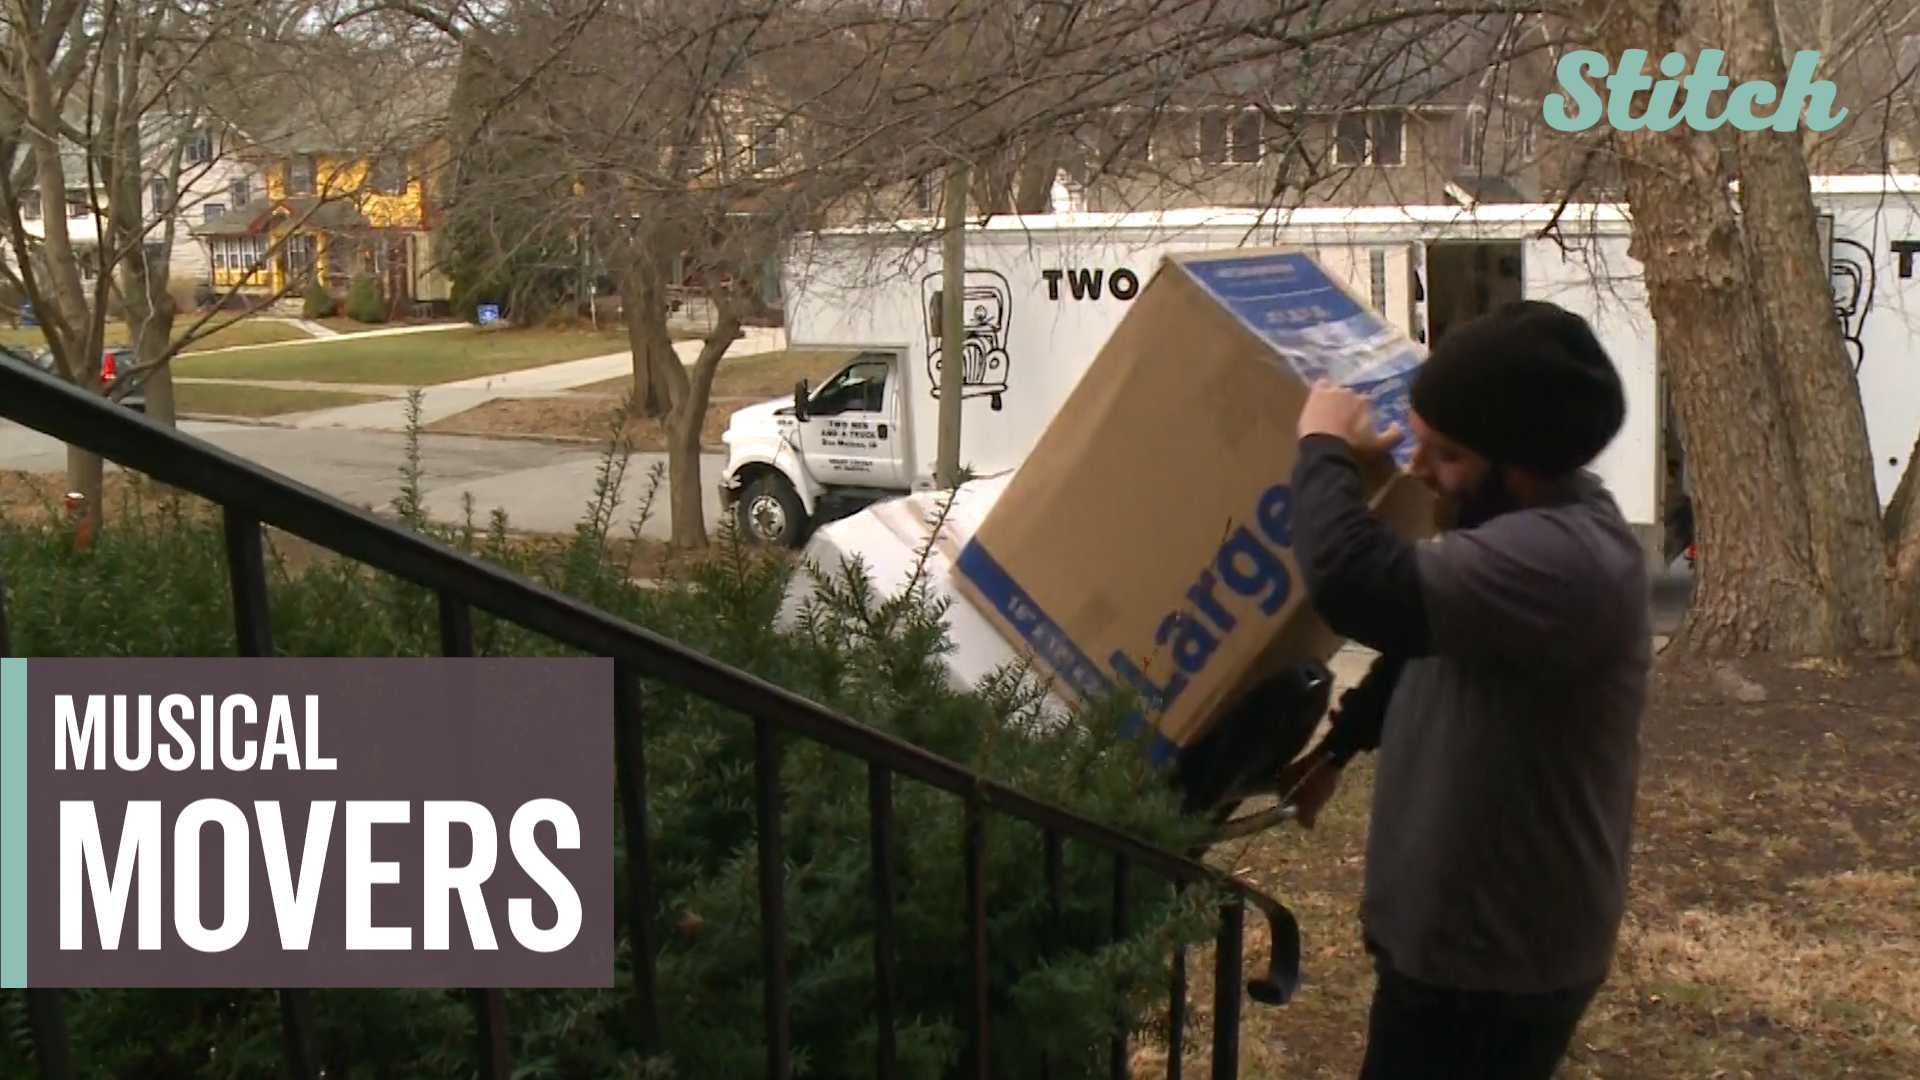 Whistle while you work: Movers sing hits, ditties while they haul people's belongings thumbnail